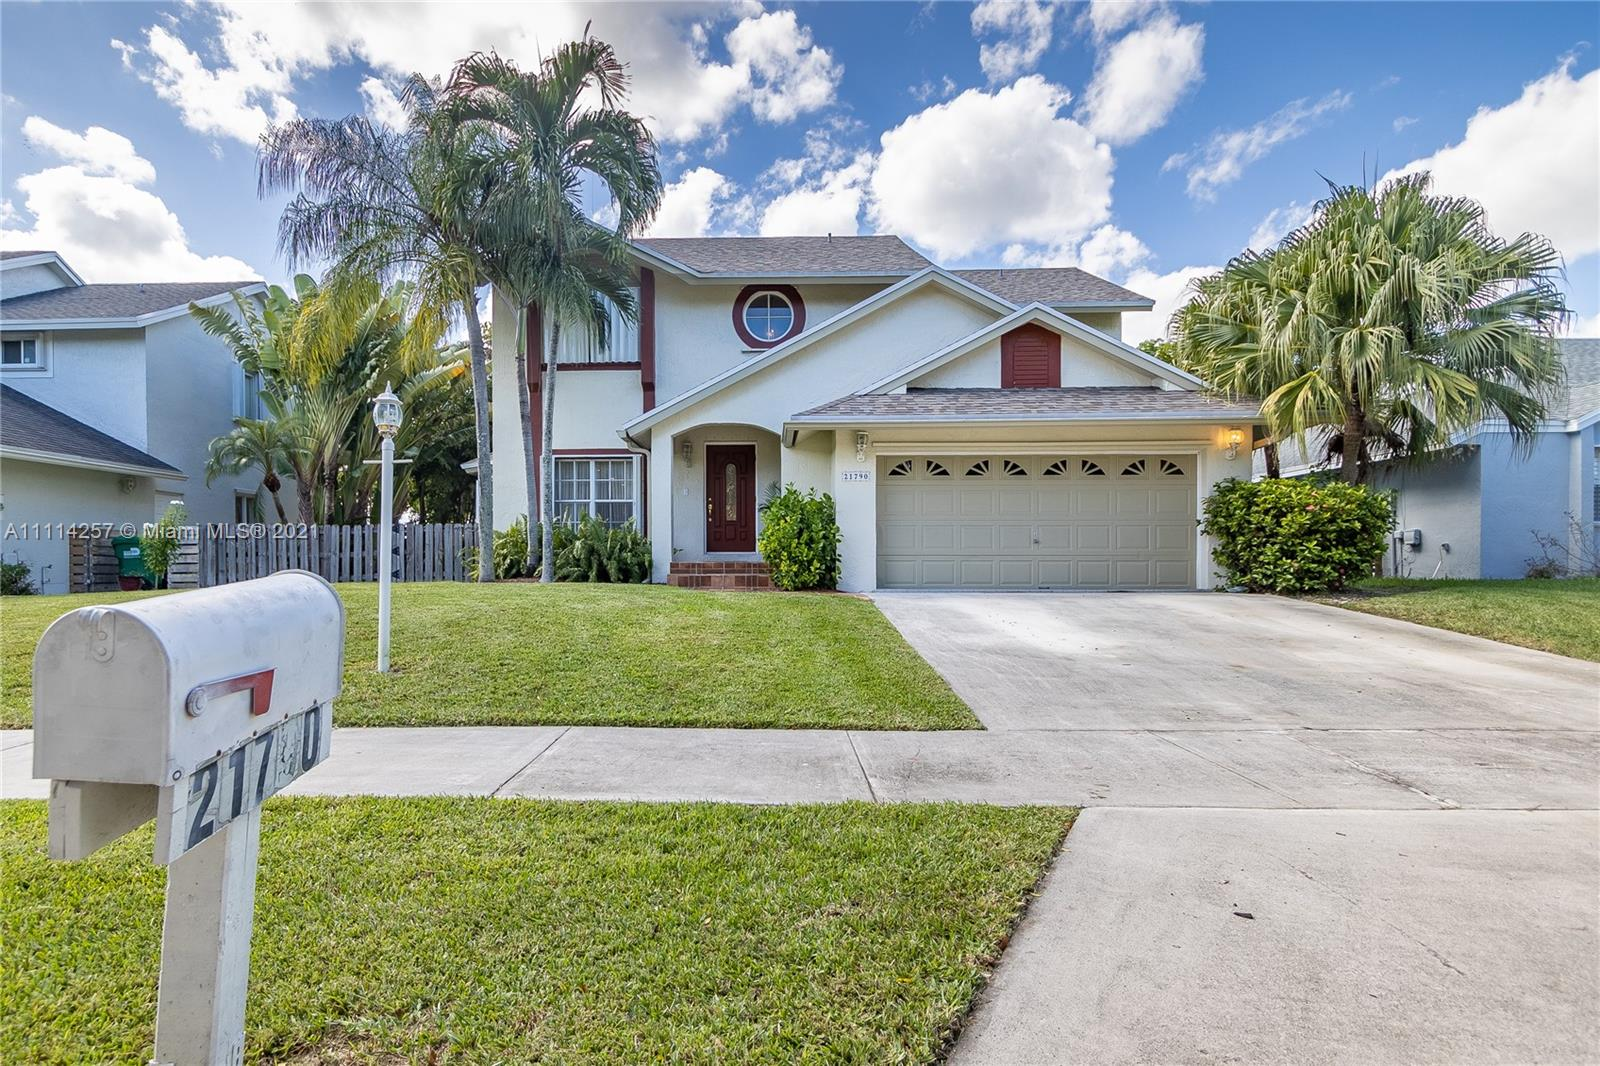 Single Family Home,For Sale,21790 SW 98th Ave, Cutler Bay, Florida 33190,Brickell,realty,broker,condos near me